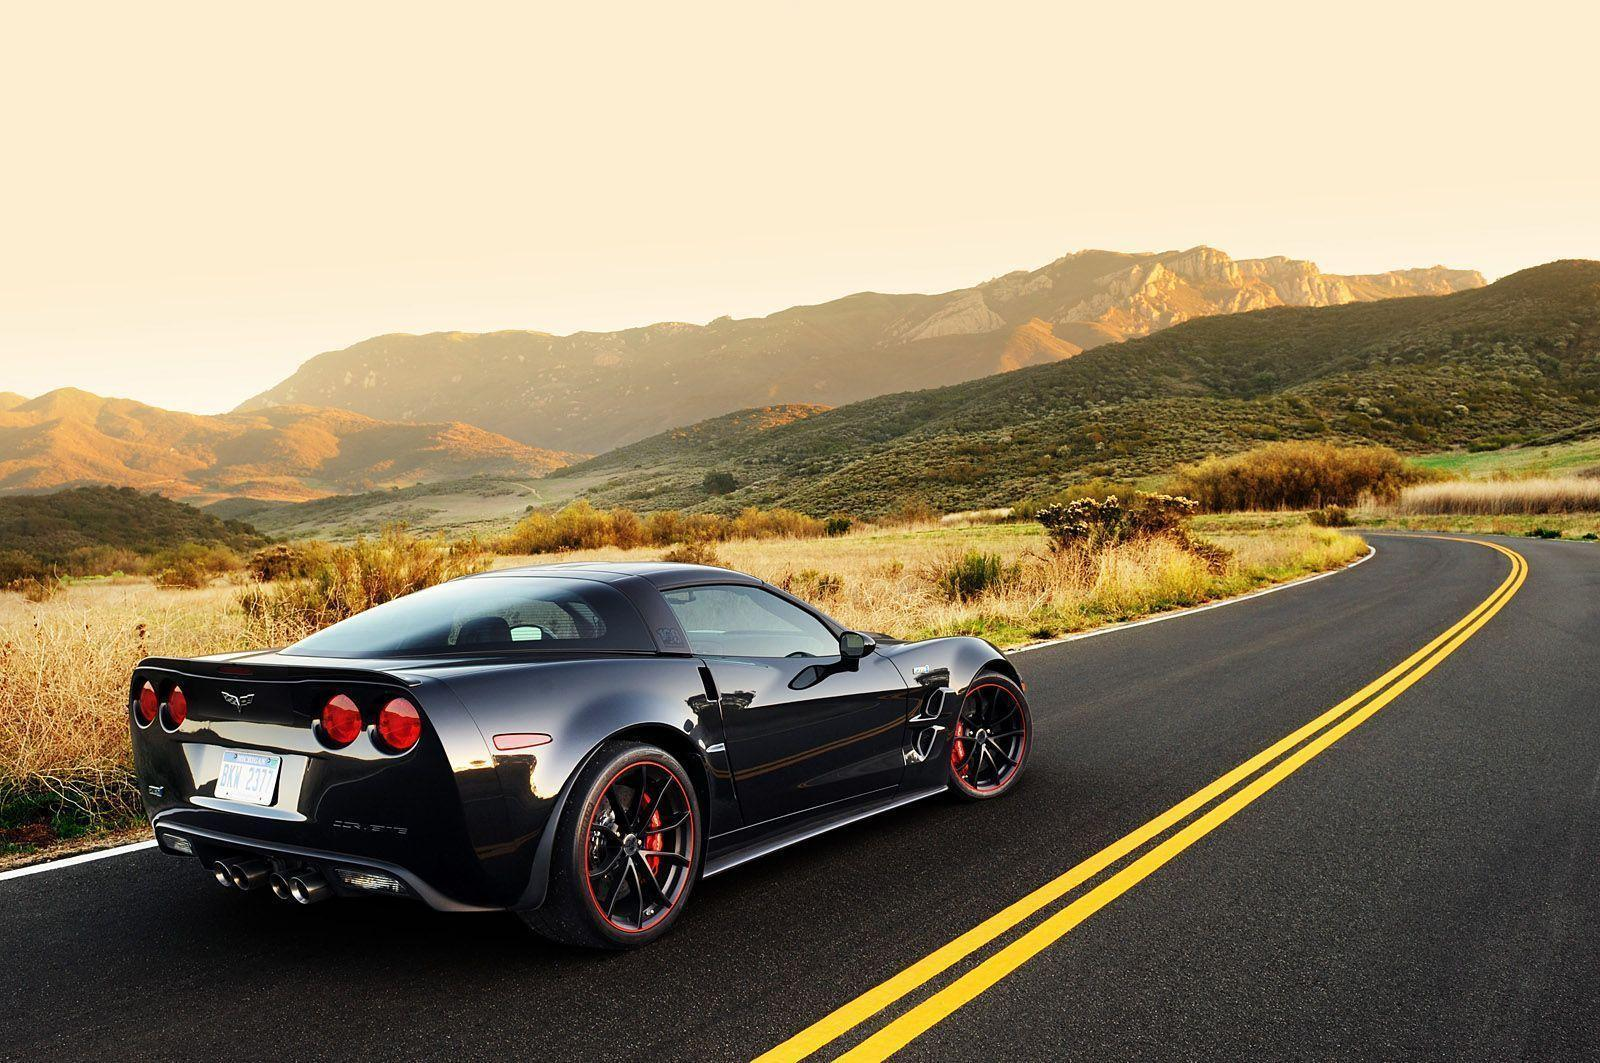 Corvette Zr1 Wallpapers Wallpaper Cave HD Wallpapers Download free images and photos [musssic.tk]